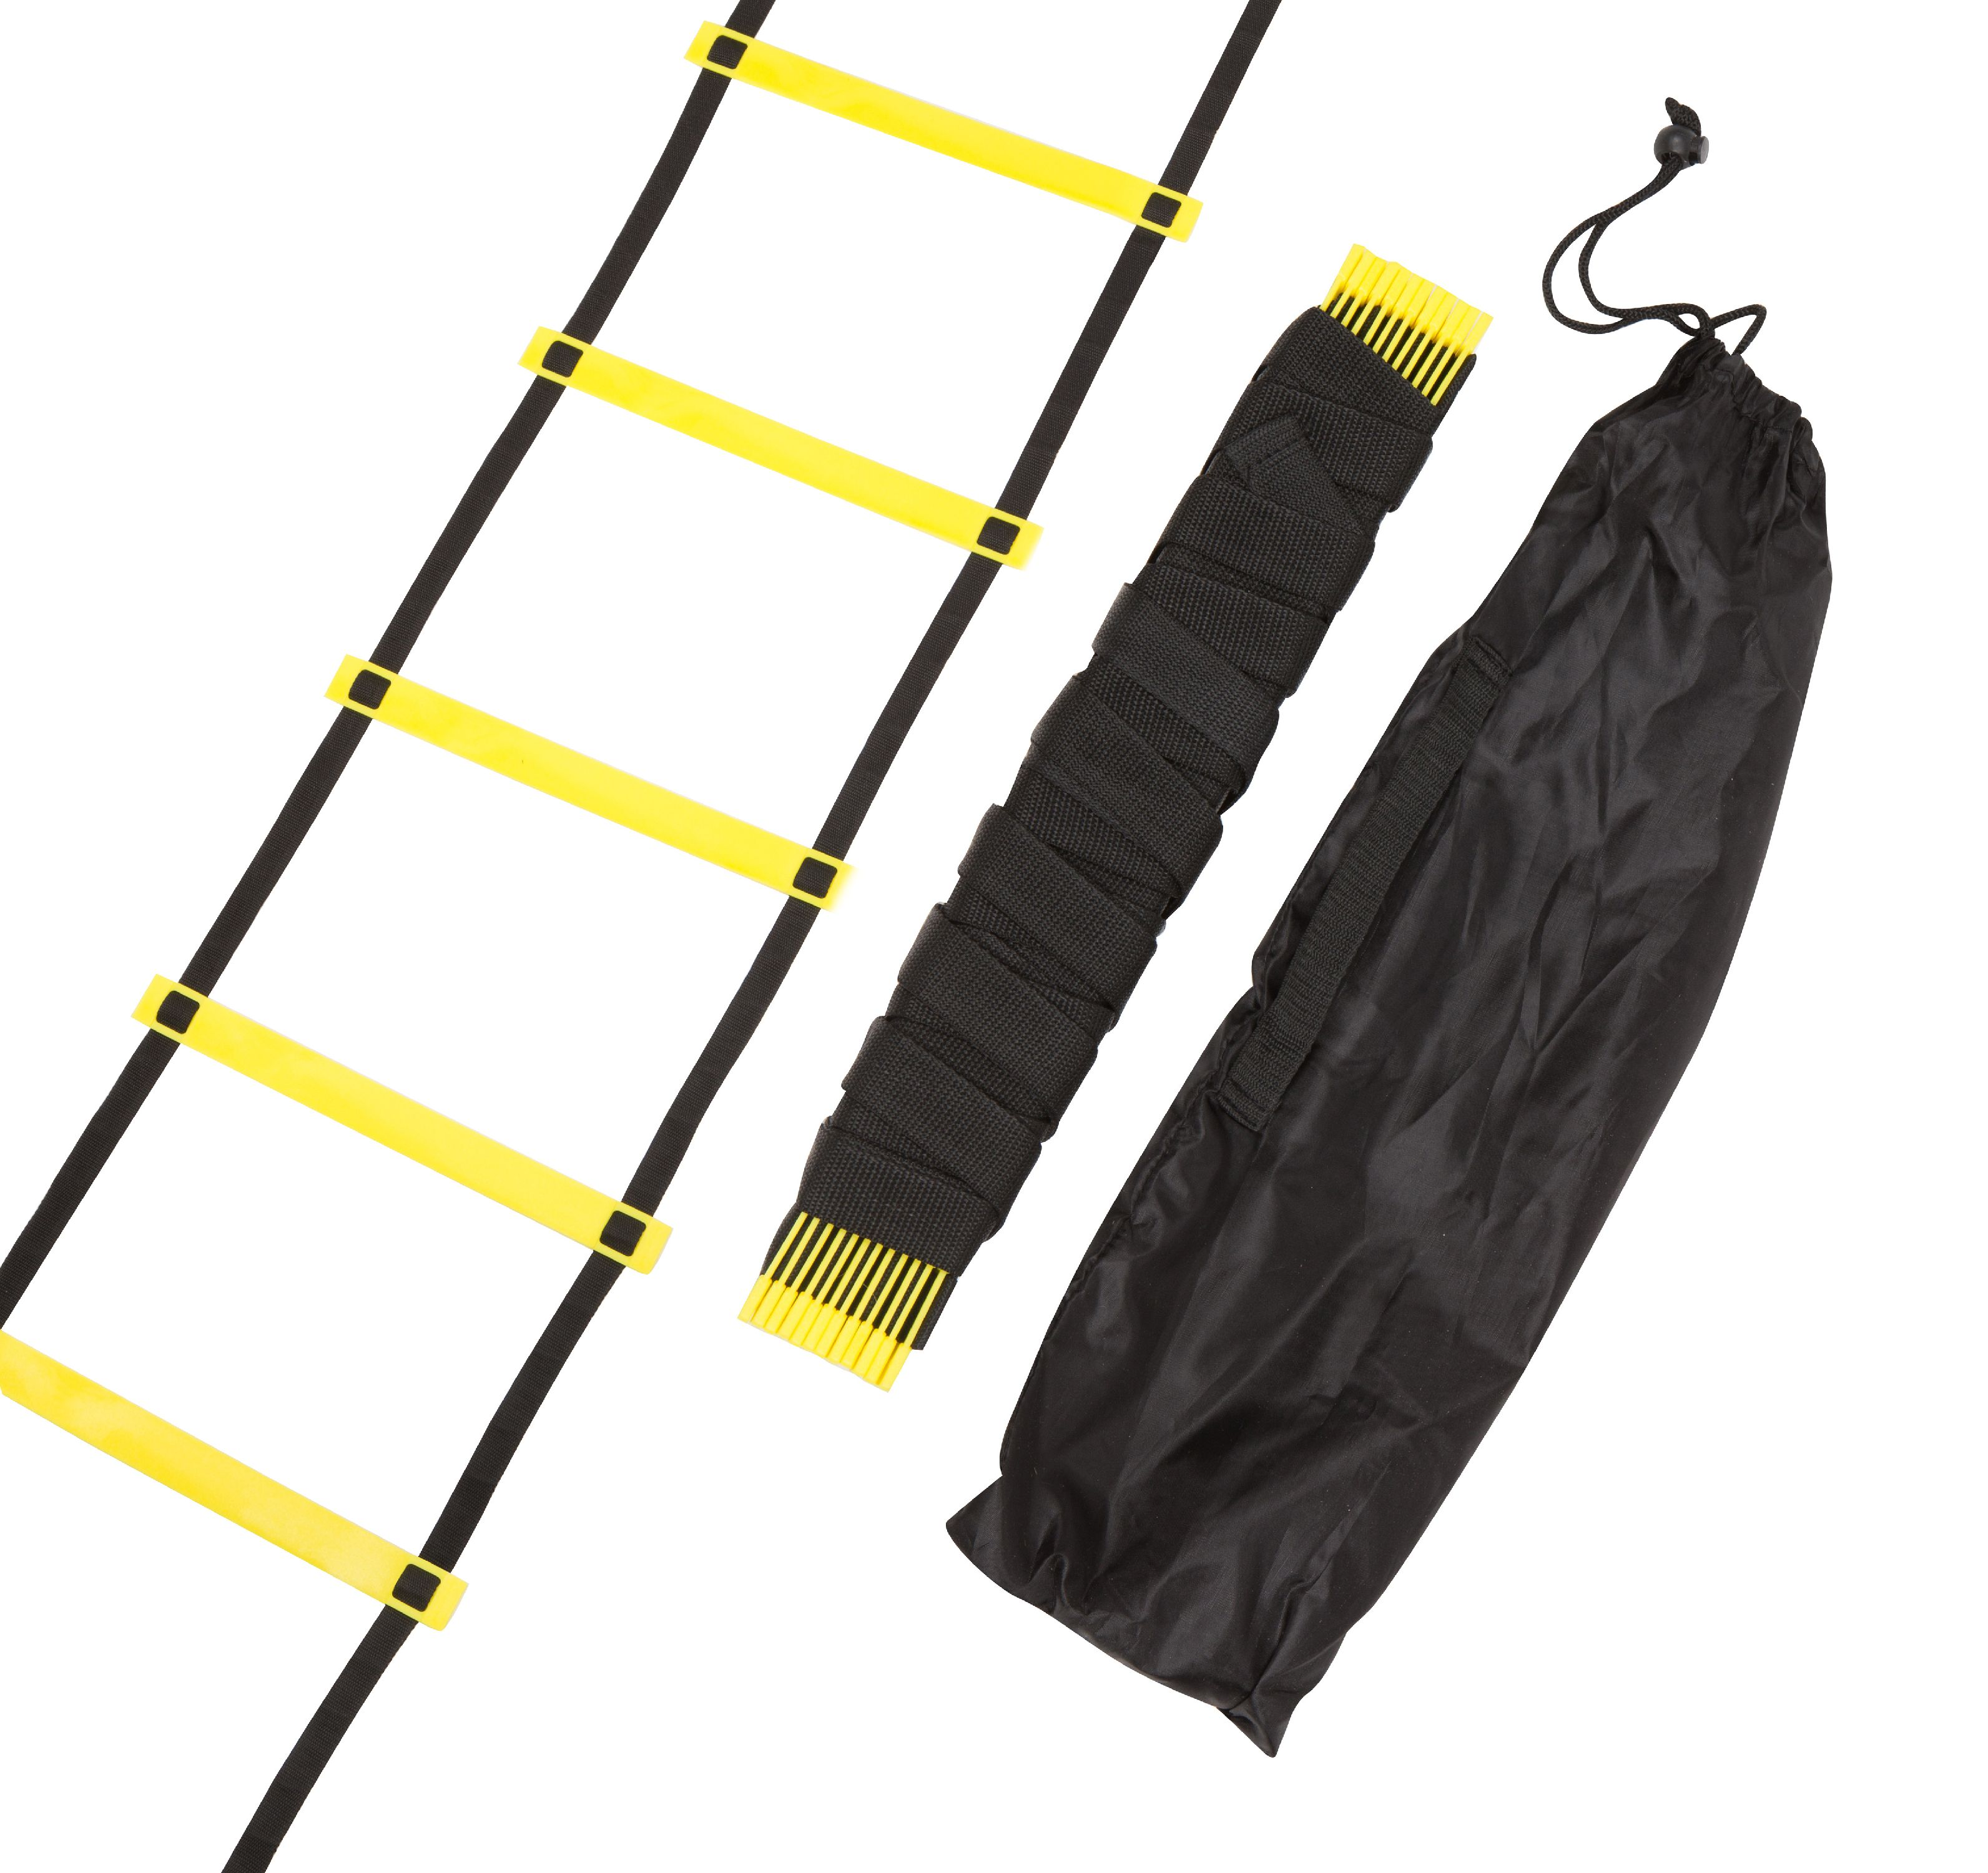 Agility Ladder - 12 Rungs Training Ladder By Trademark Innovations (Black and Yellow)